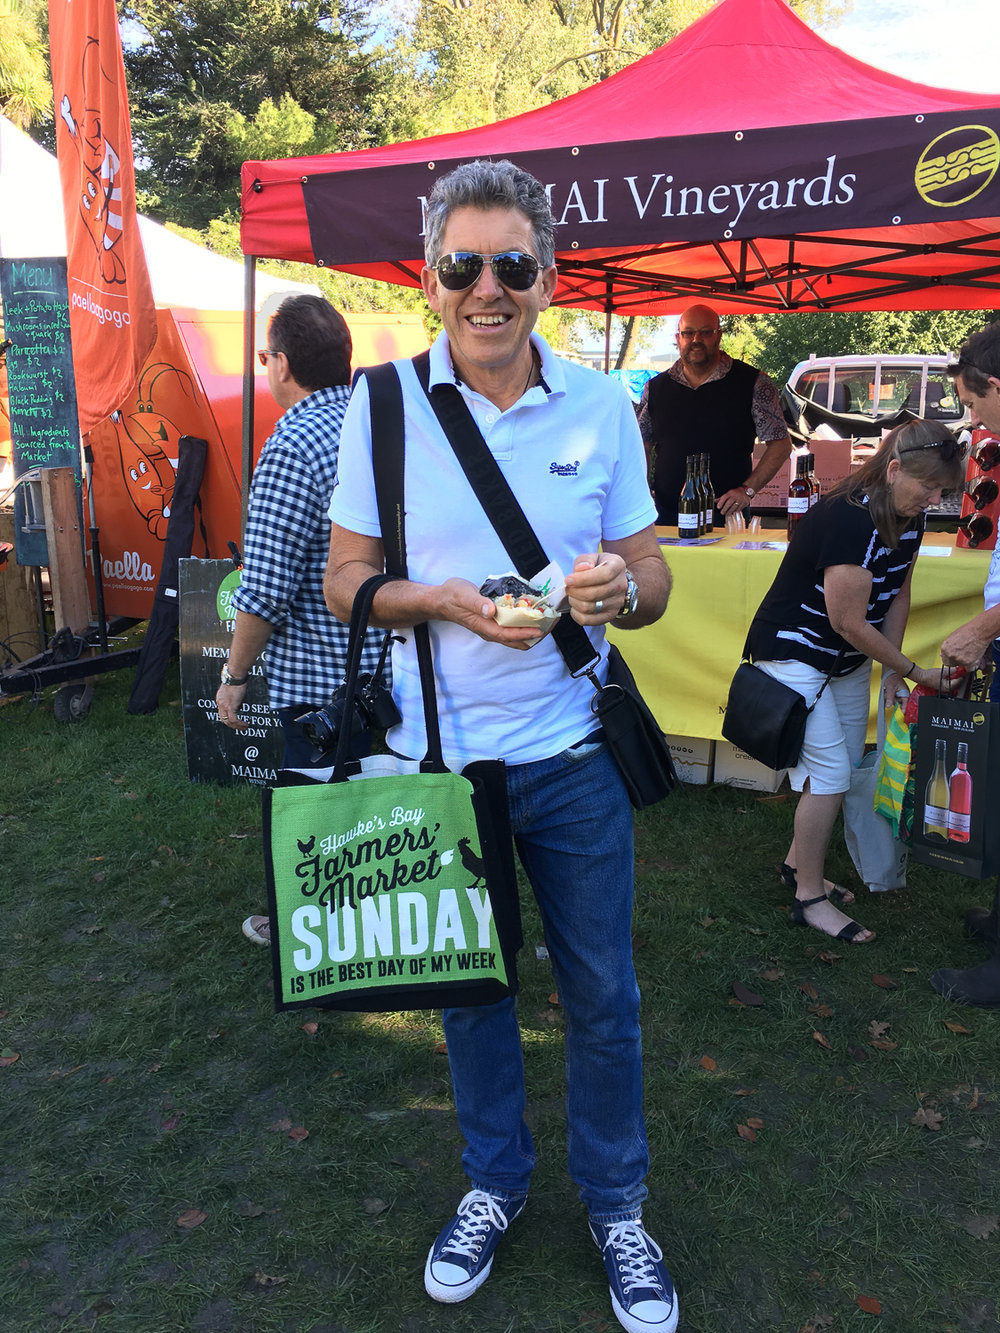 Where did you buy the bag? Hawkes Bay Farmers Market of course.